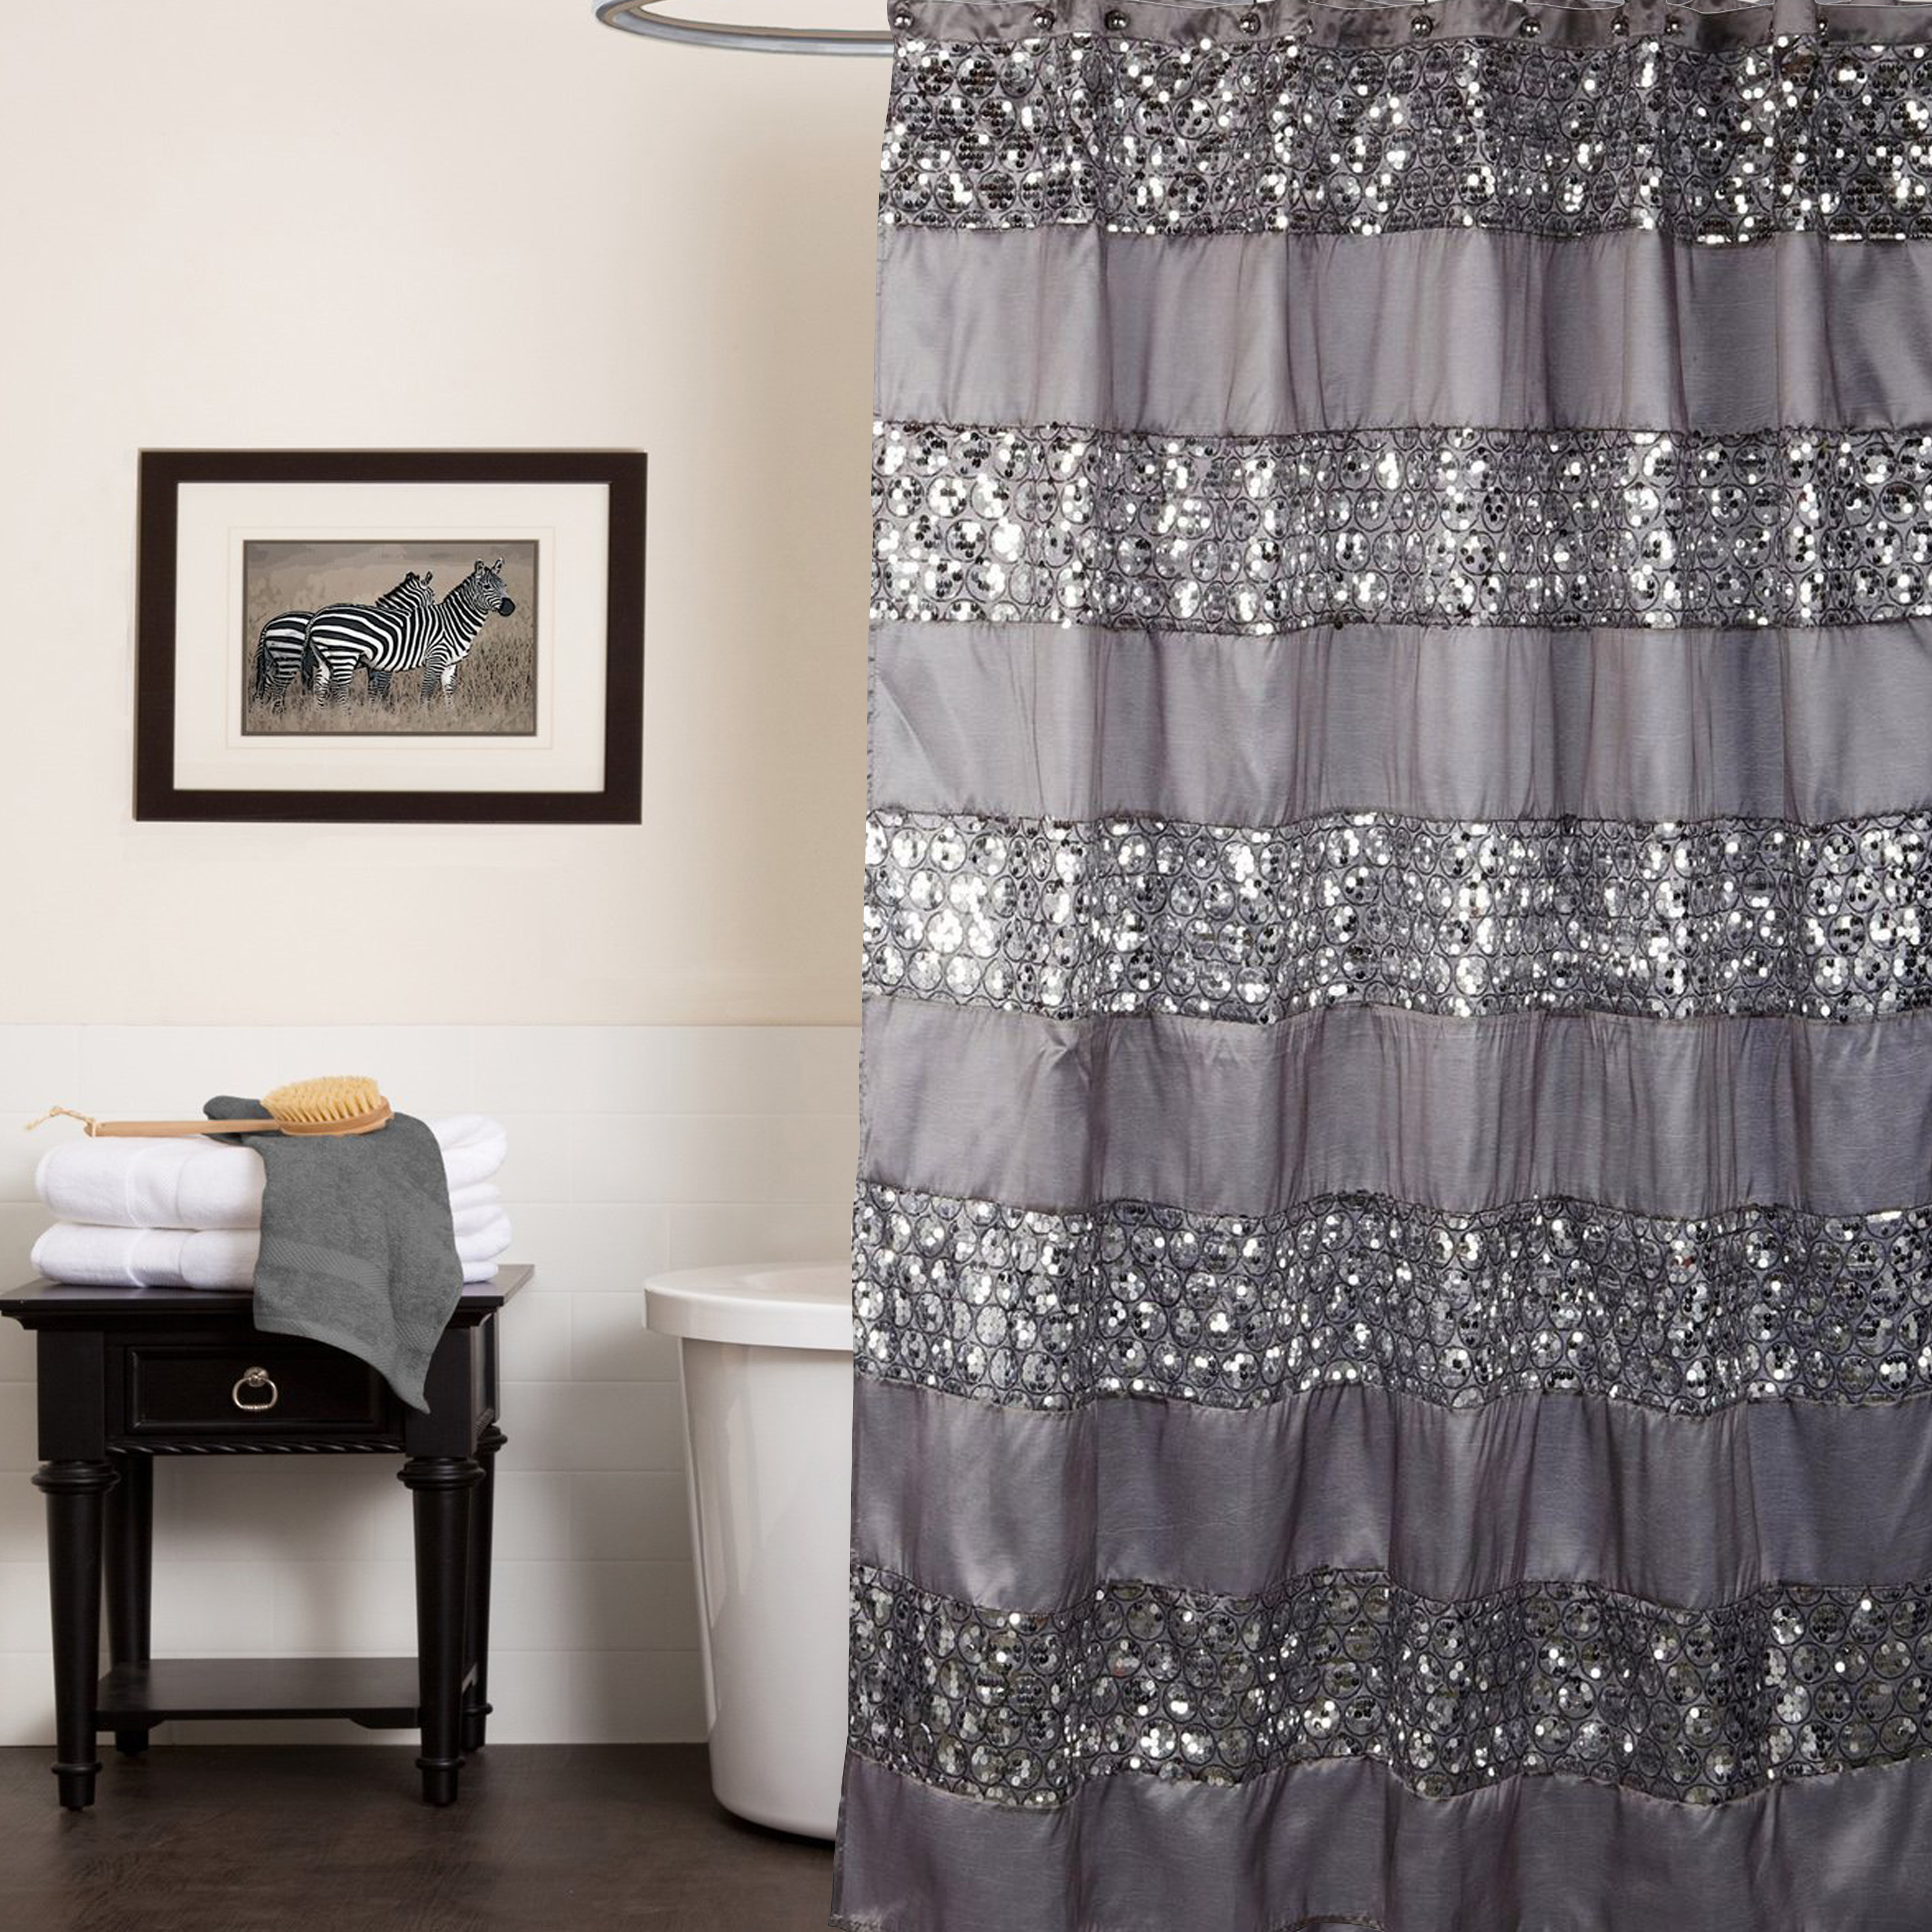 Bathroom Awesome Ruffle Shower Curtain For Decoration Bathroom intended for sizing 3500 X 3500